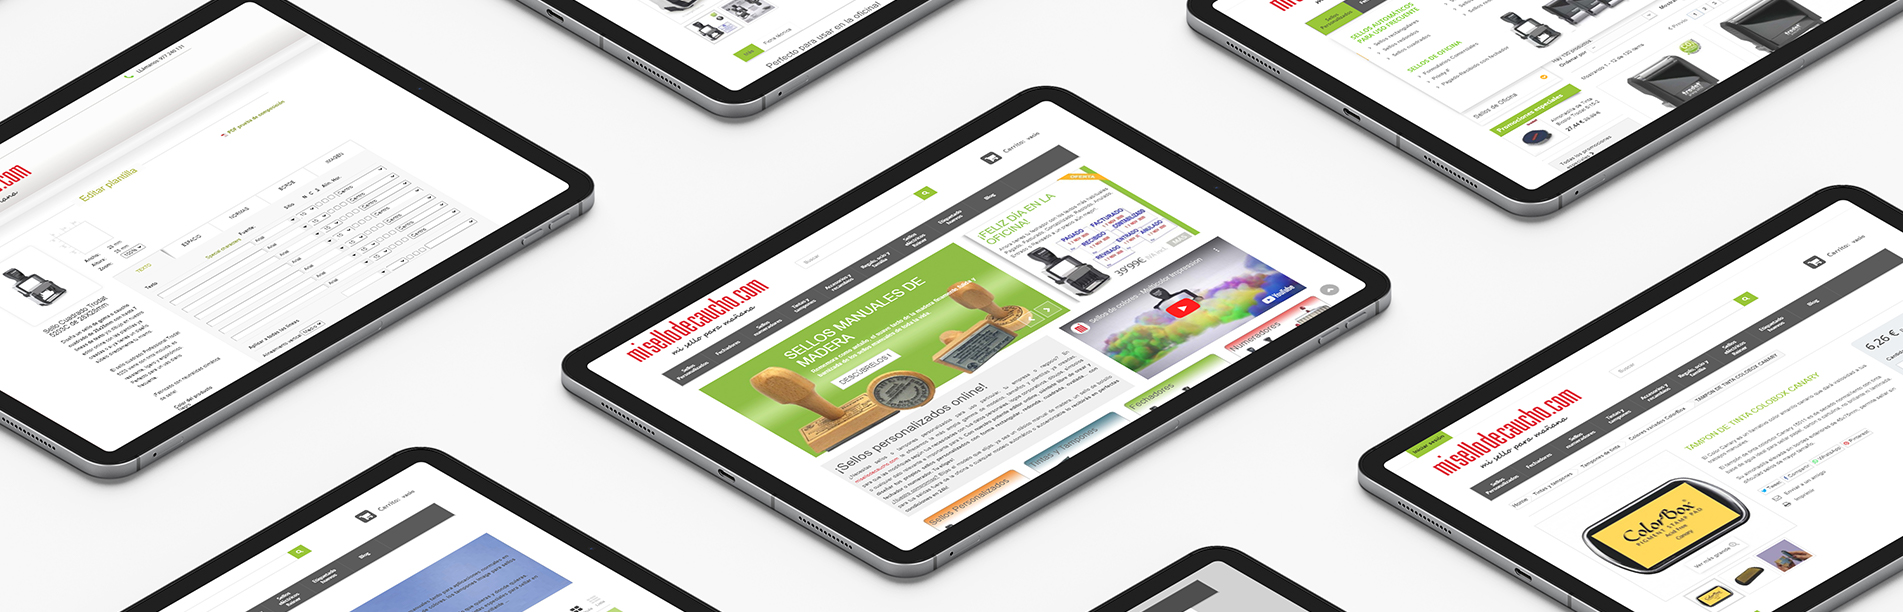 responsive_ipad_sello_caucho